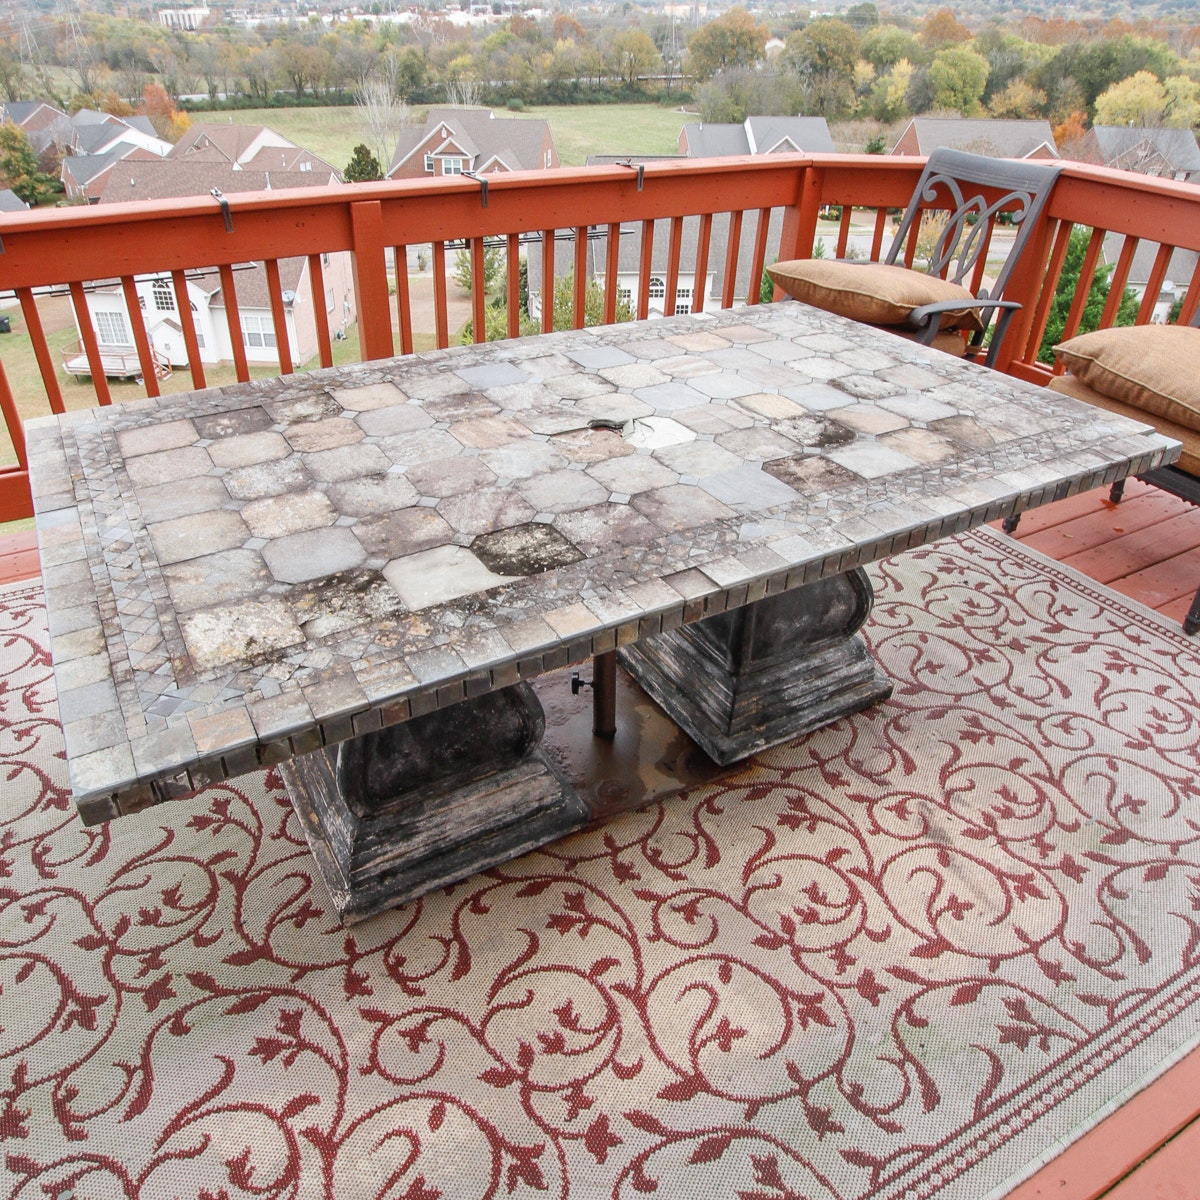 Rustic Tile Outdoor Table and Umbrella